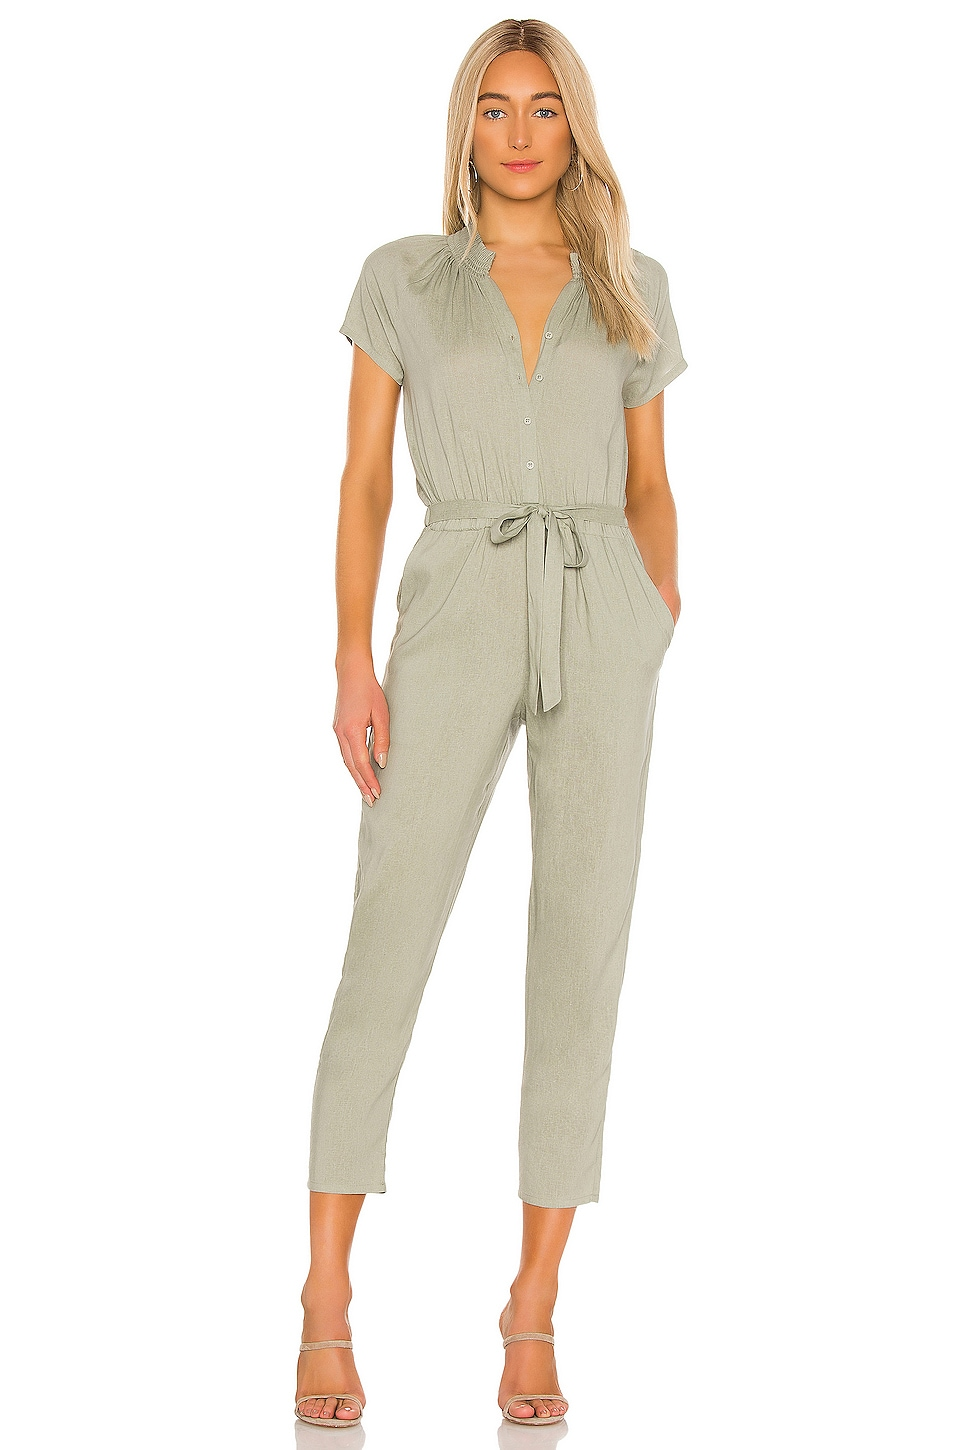 JACK by BB Dakota I'm All In Jumpsuit             BB Dakota                                                                                                       CA$ 126.54 4